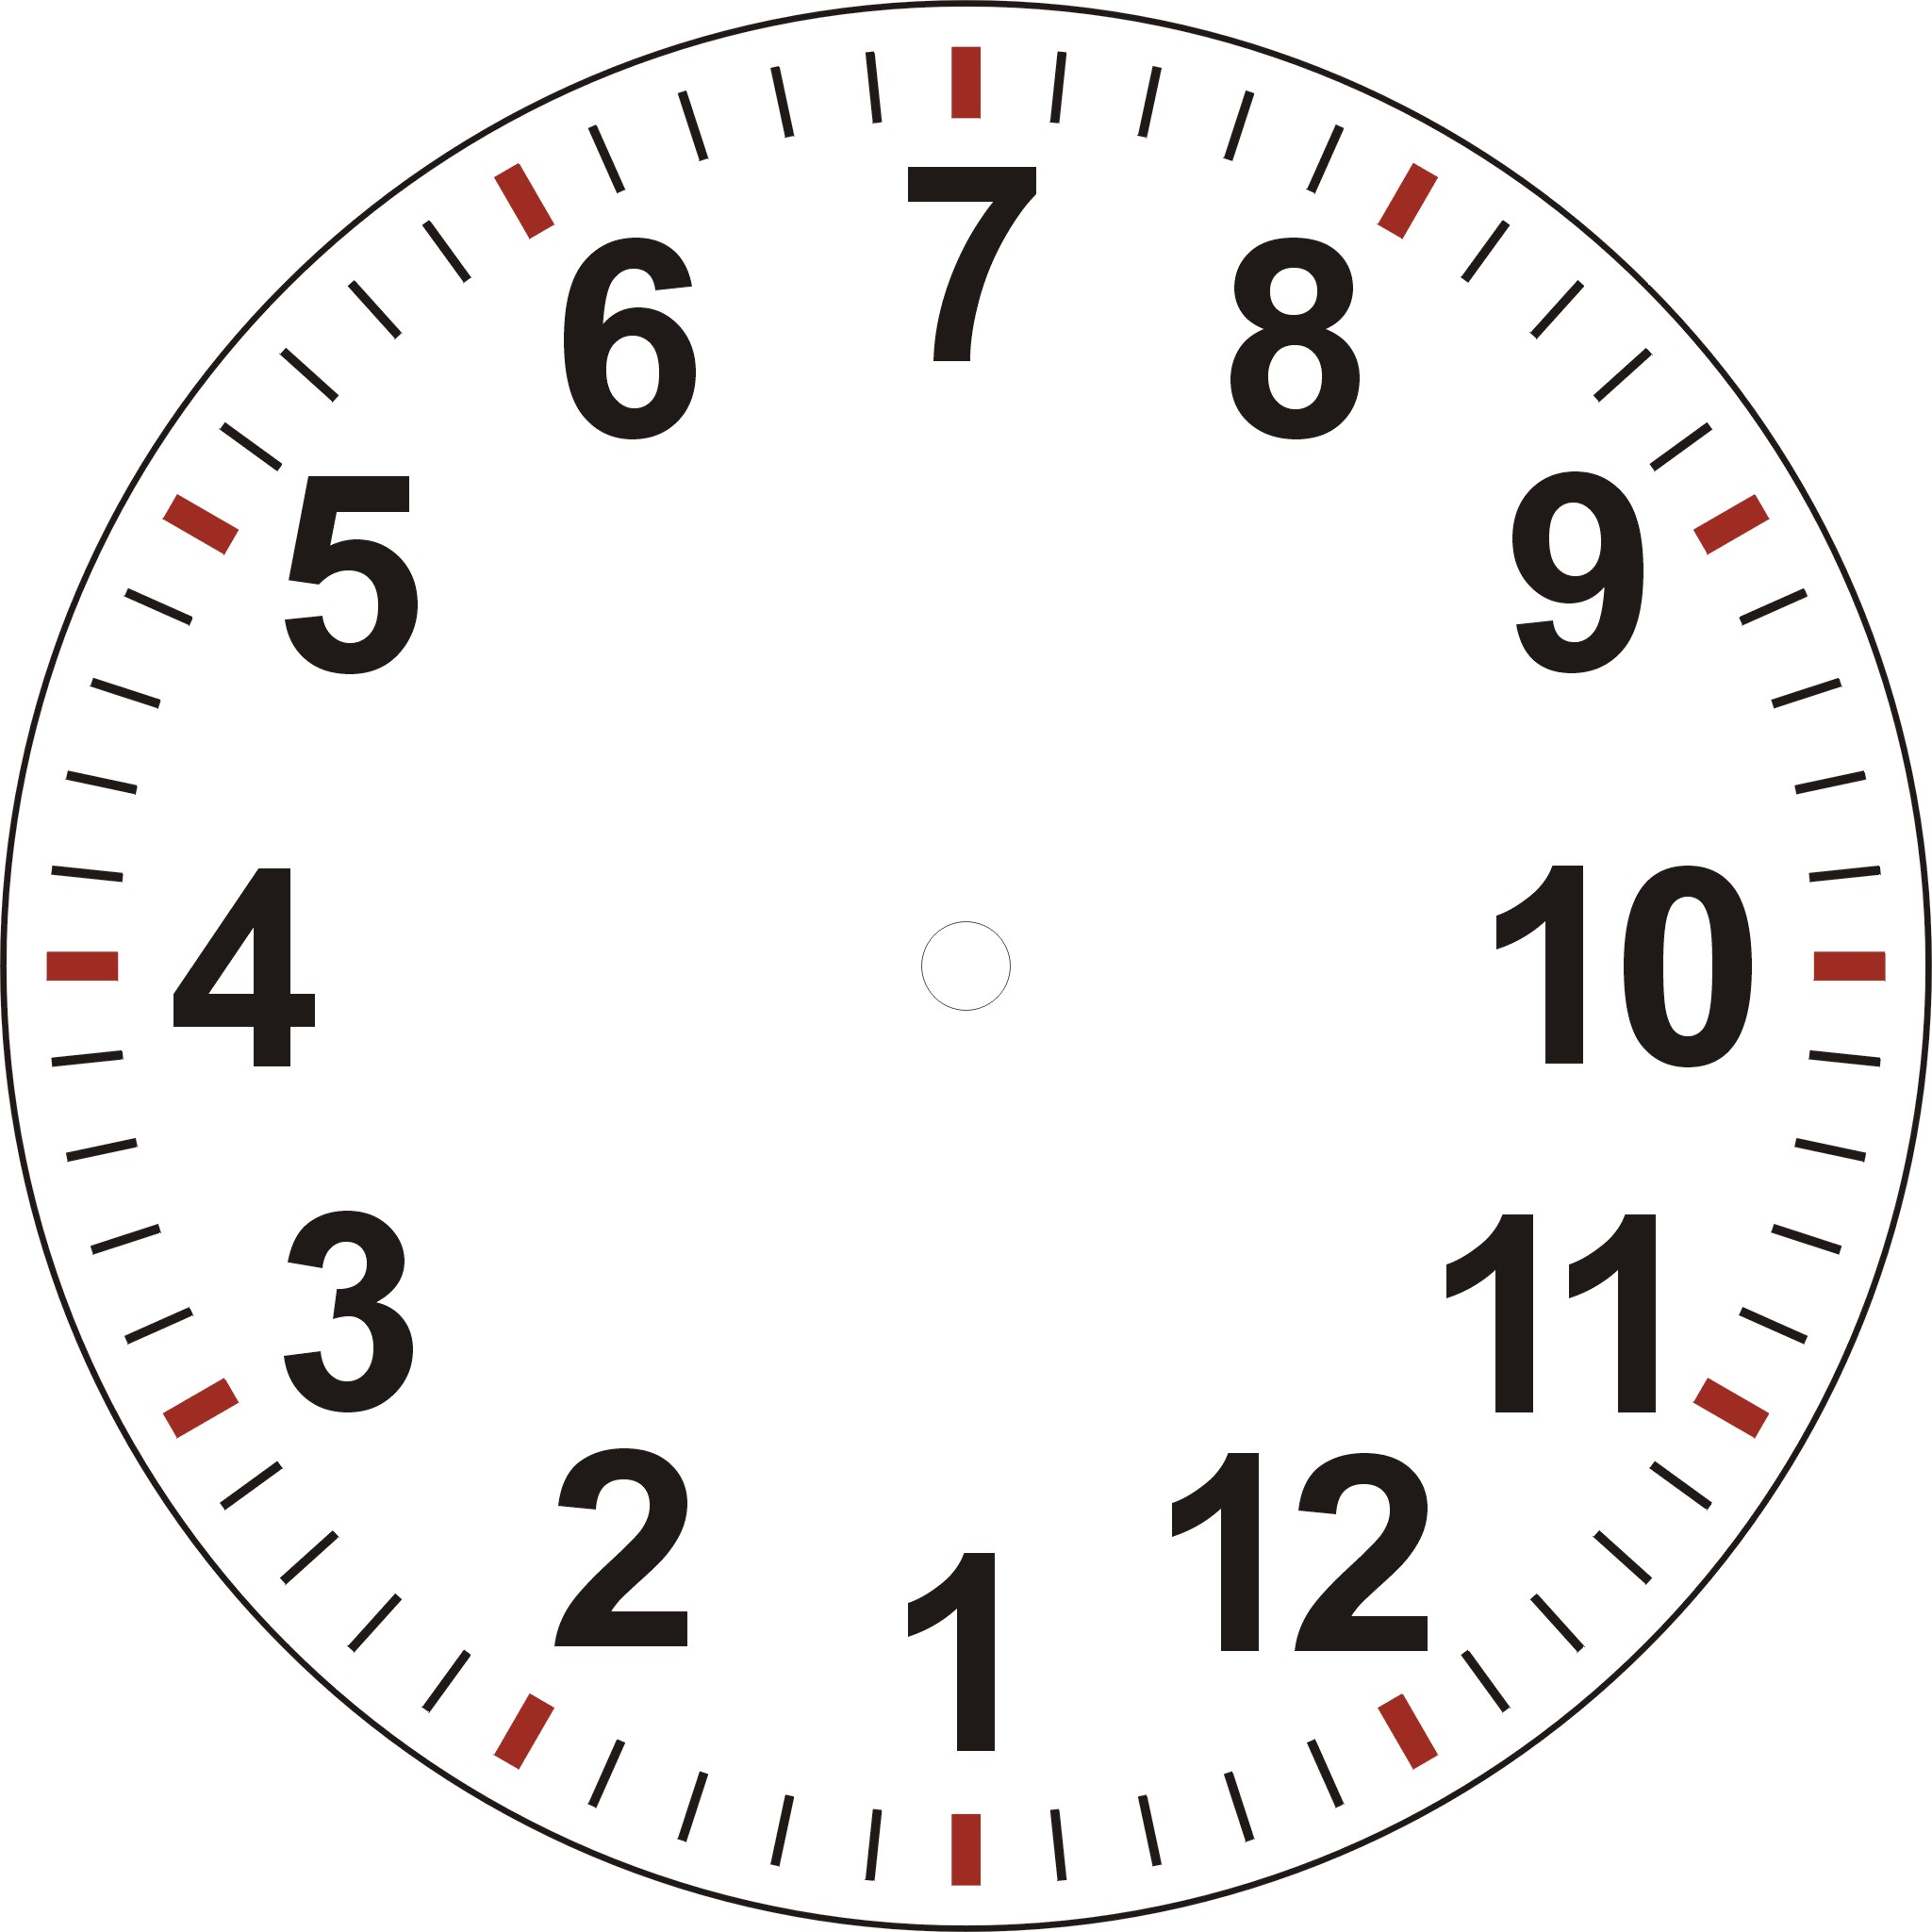 hour and minute hand template - Ukran.soochi.co